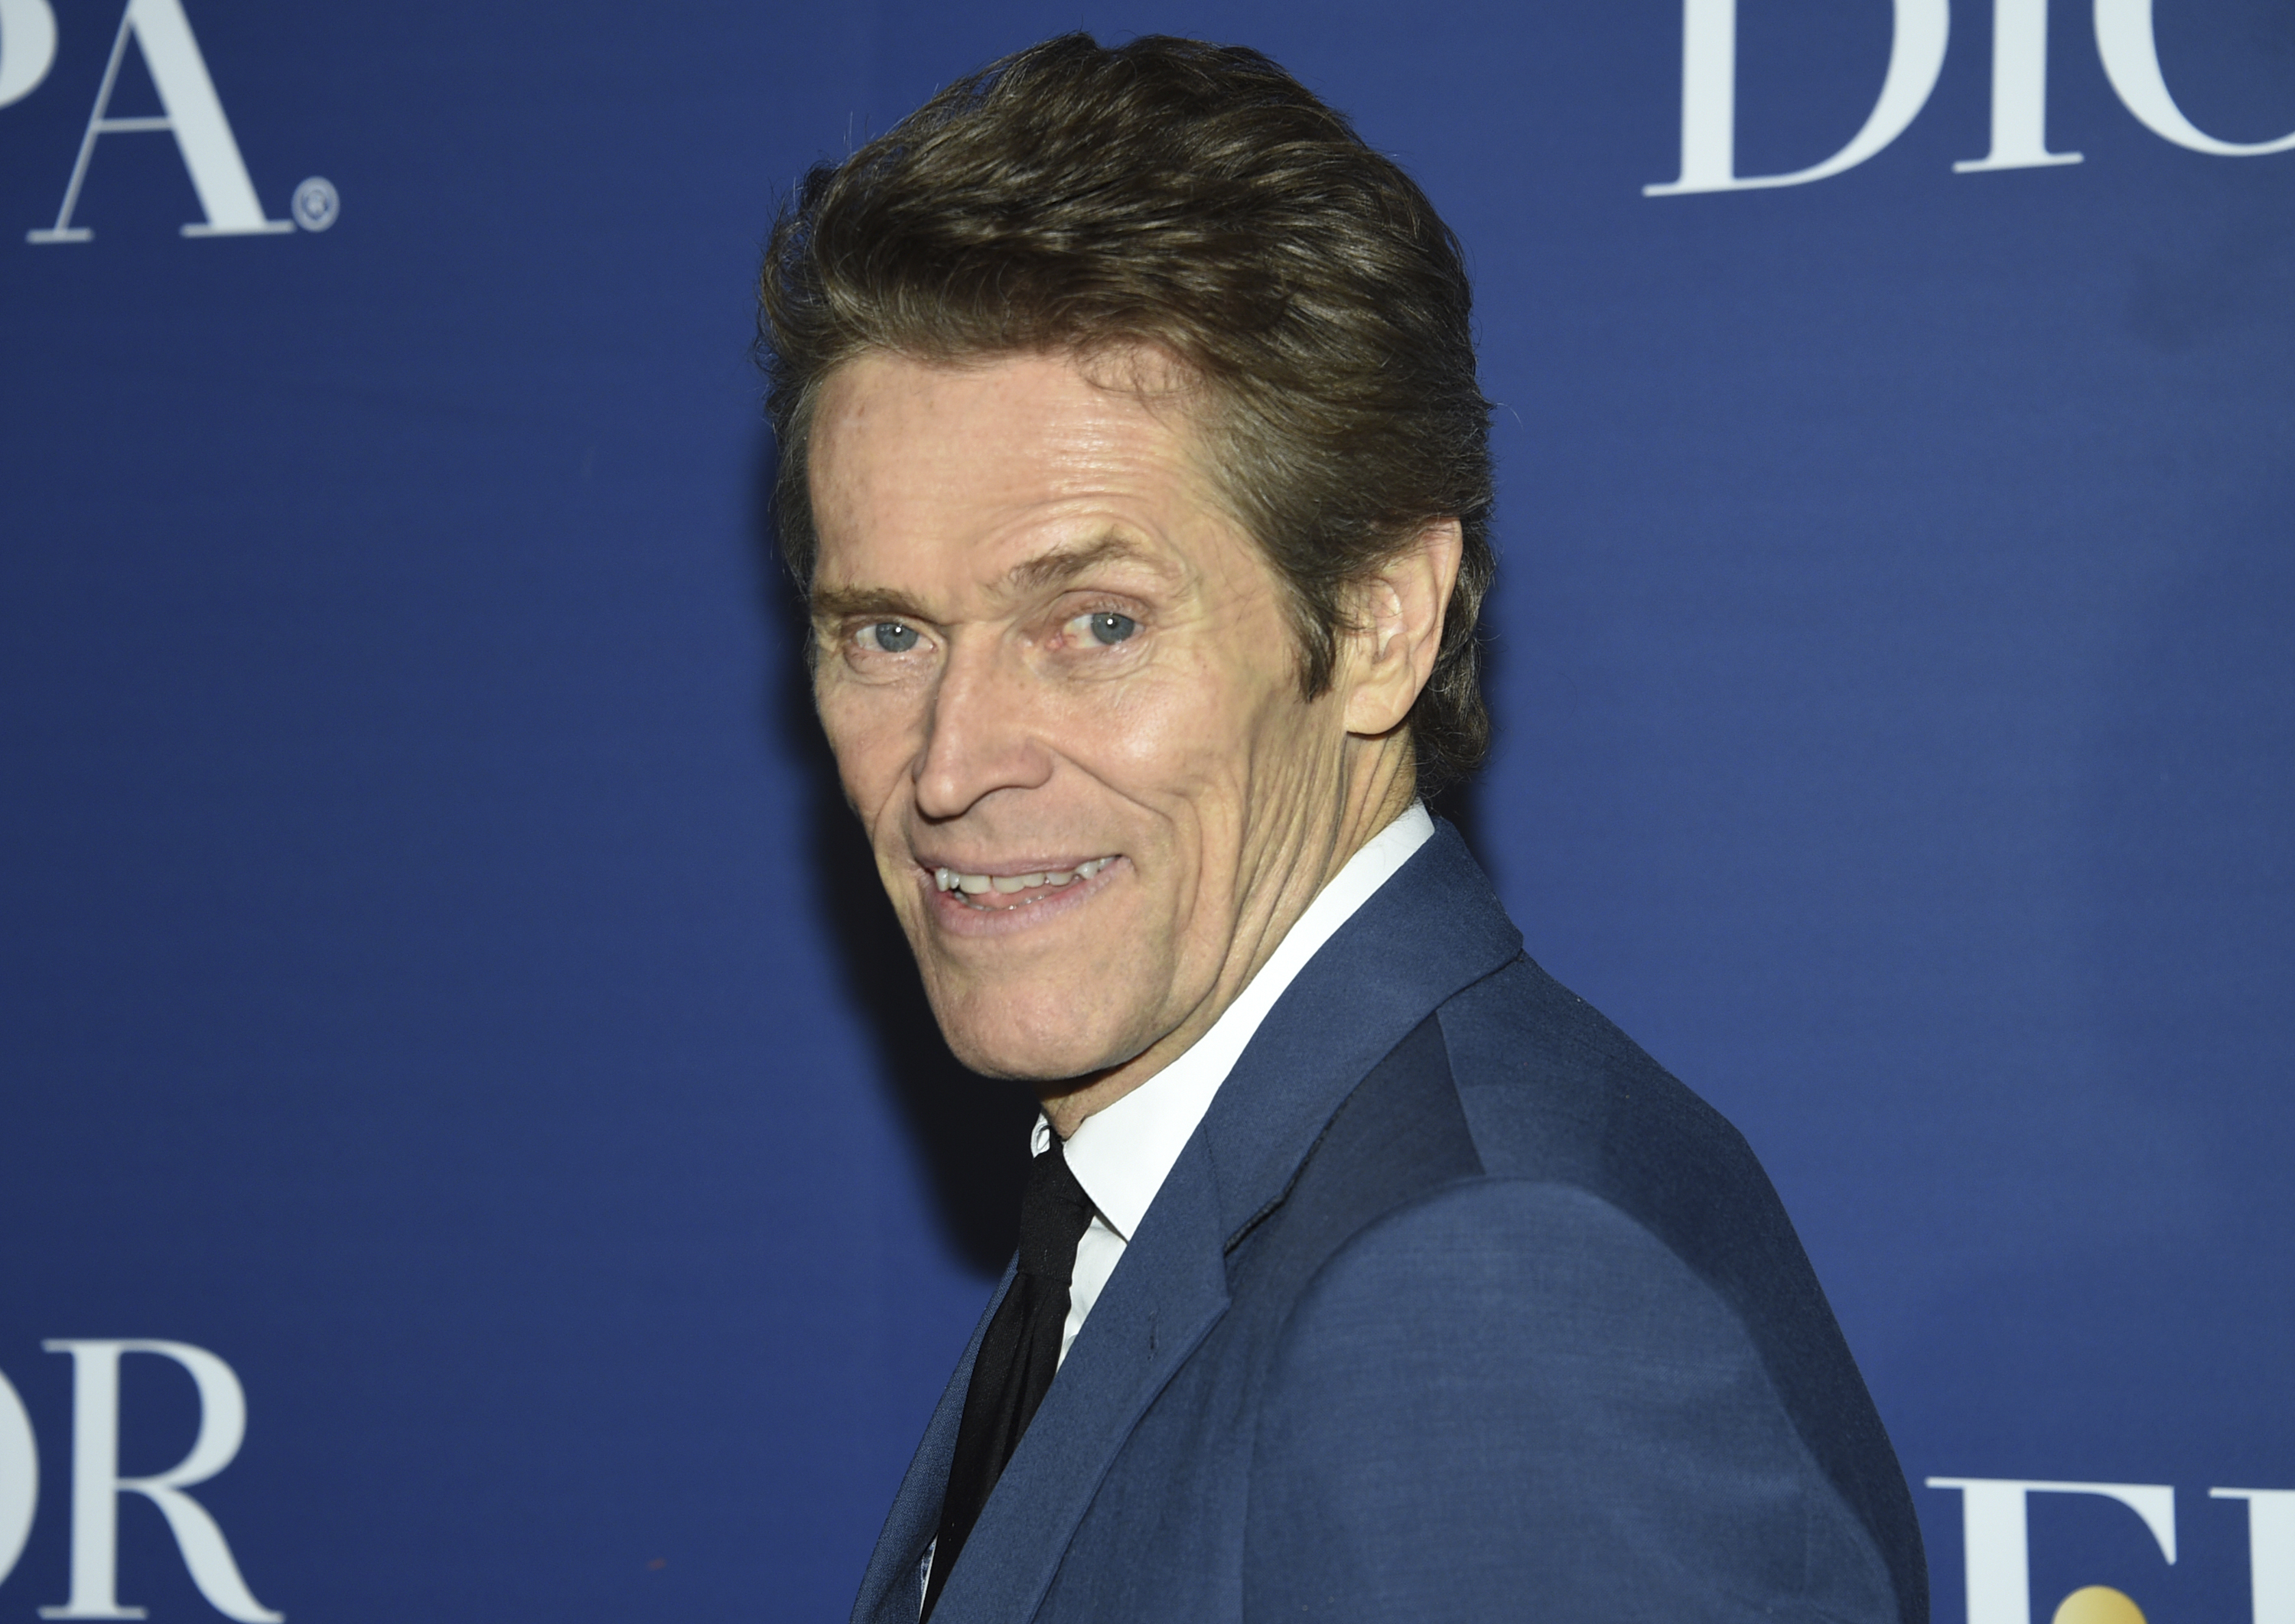 Willem Dafoe attends The Hollywood Foreign Press Association and The Hollywood Reporter's Toronto International Film Festival party on day three of TIFF at the Four Seasons Hotel on Saturday, Sept. 7, 2019, in Toronto. (Photo by Evan Agostini/Invision/AP)